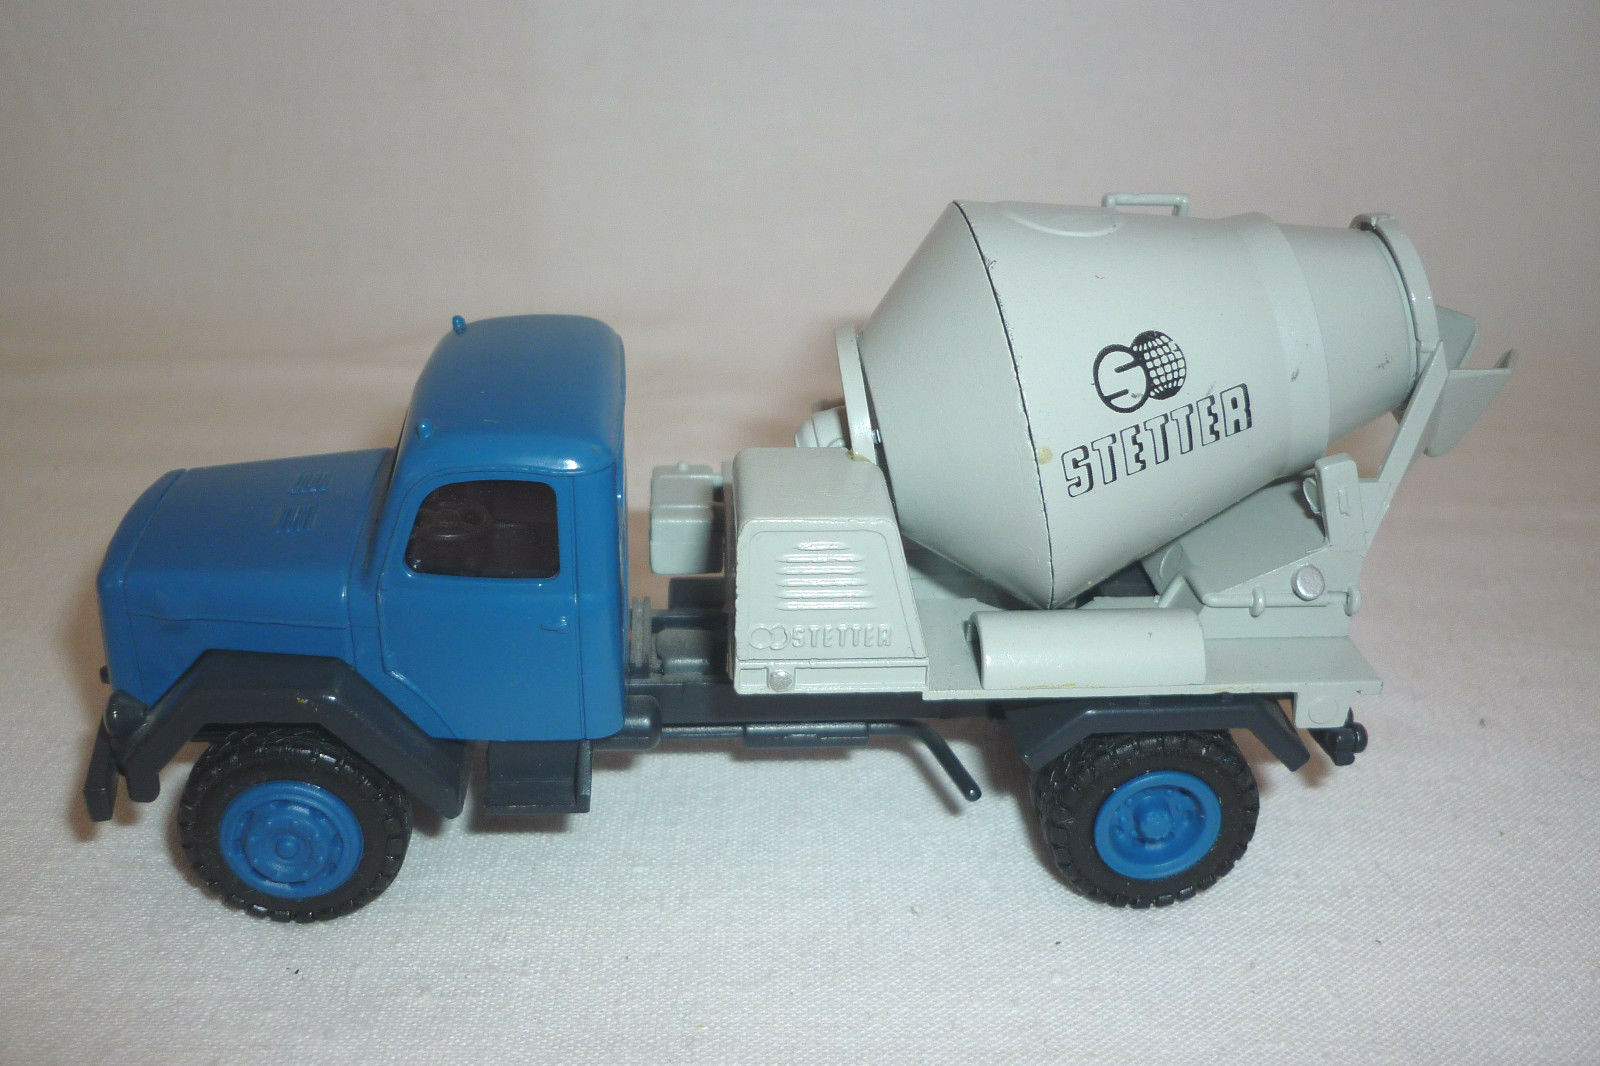 Conrad-Metal model-Firm-Vintage-Concrete Mixer - 1 43 - (7.bm-168)   80% de réduction